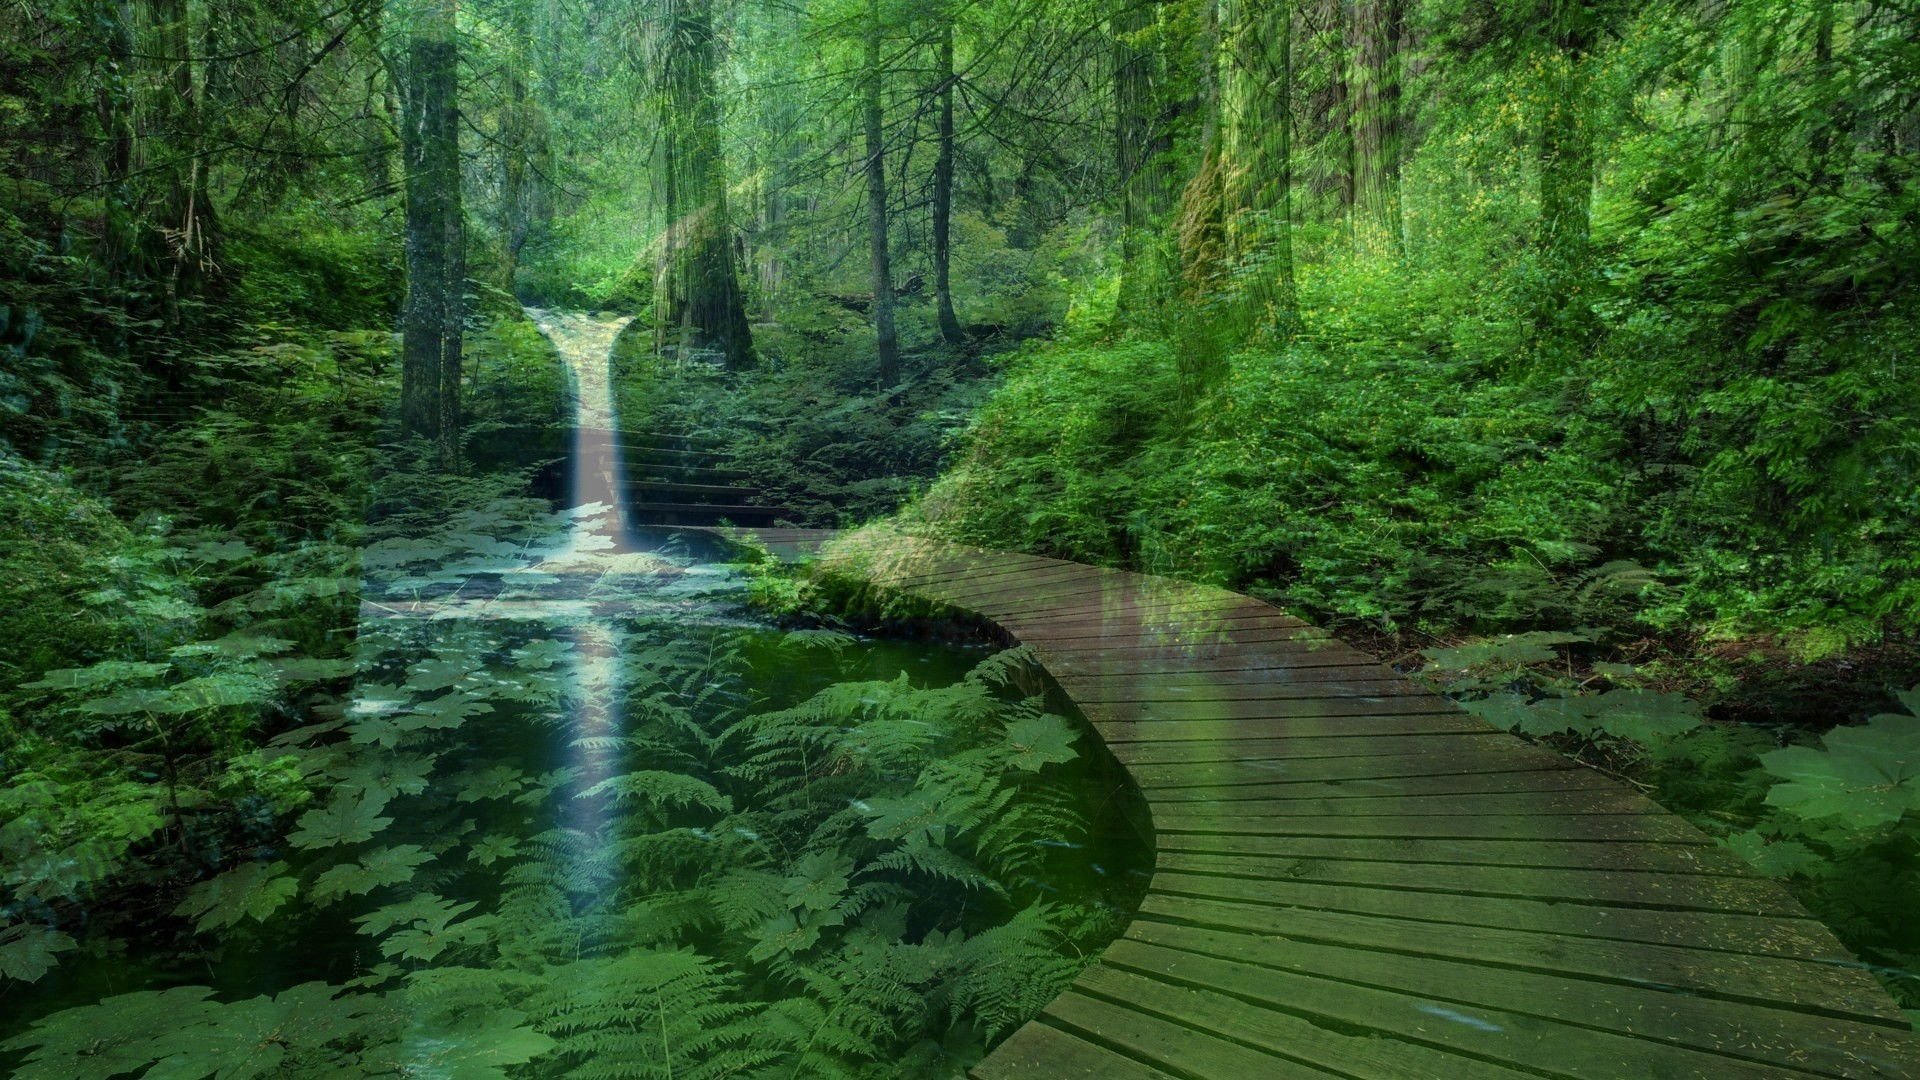 Peaceful Wallpapers Images · Peaceful Wallpaper …